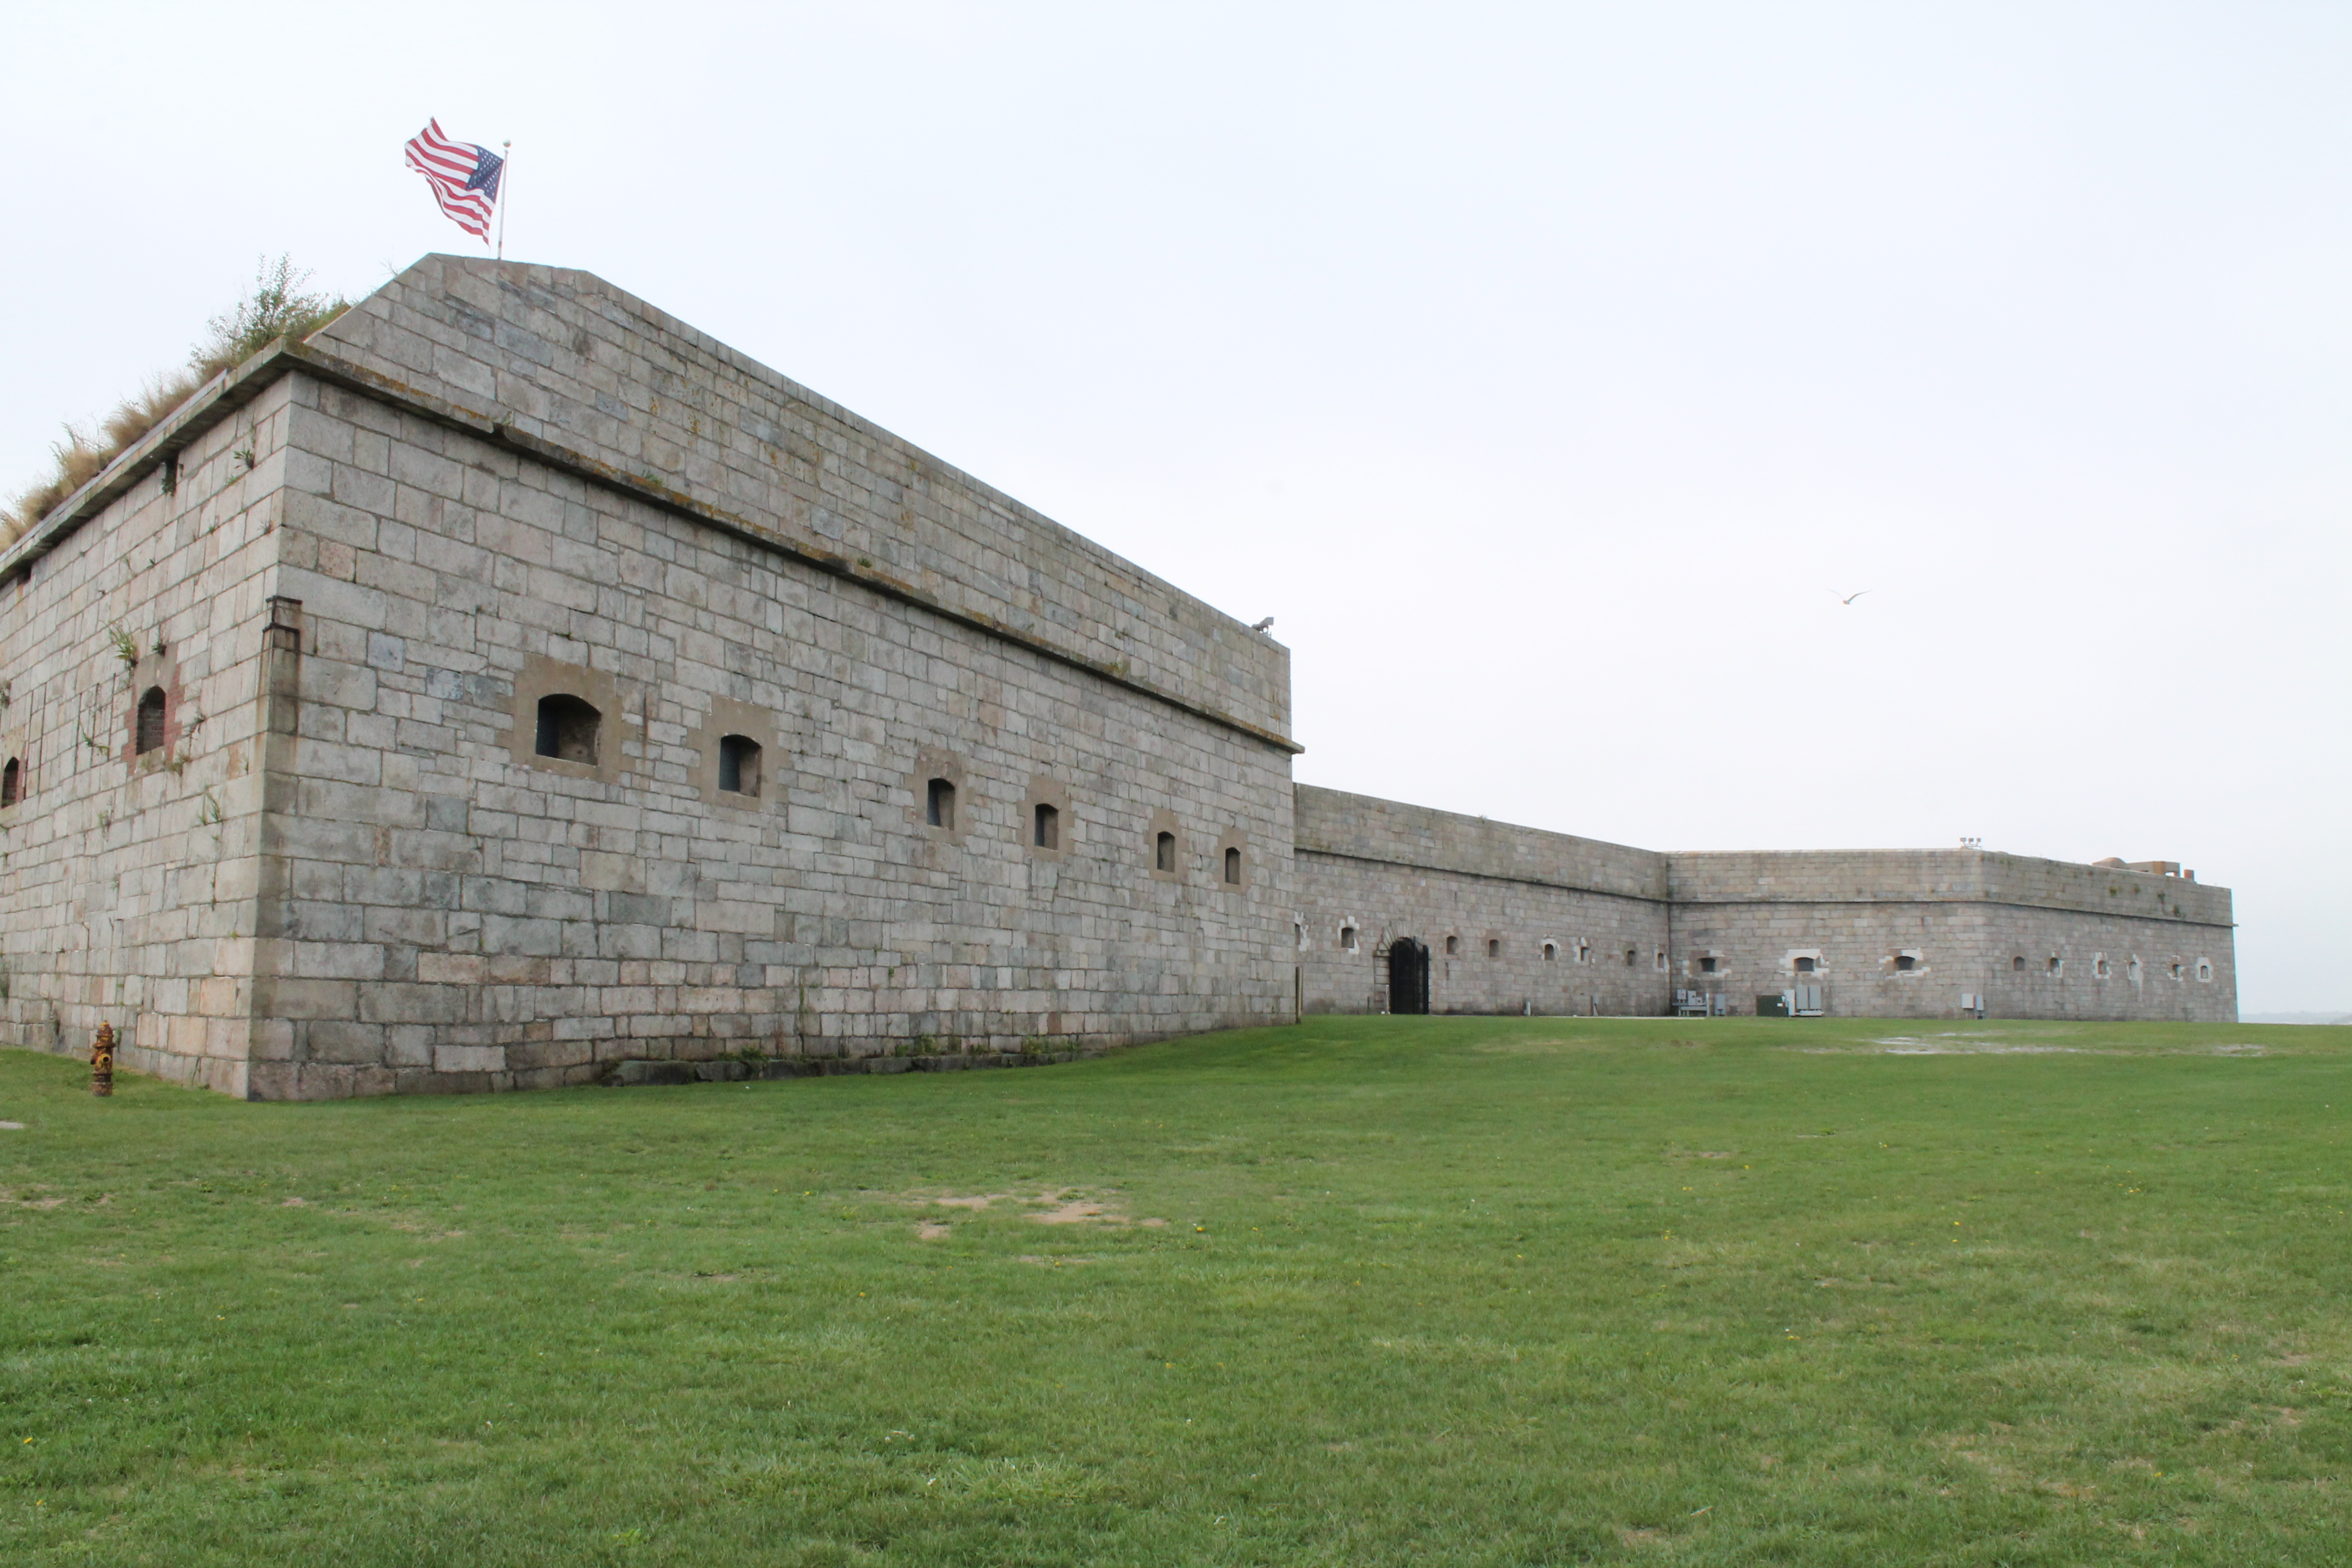 A closer view outside of the fort